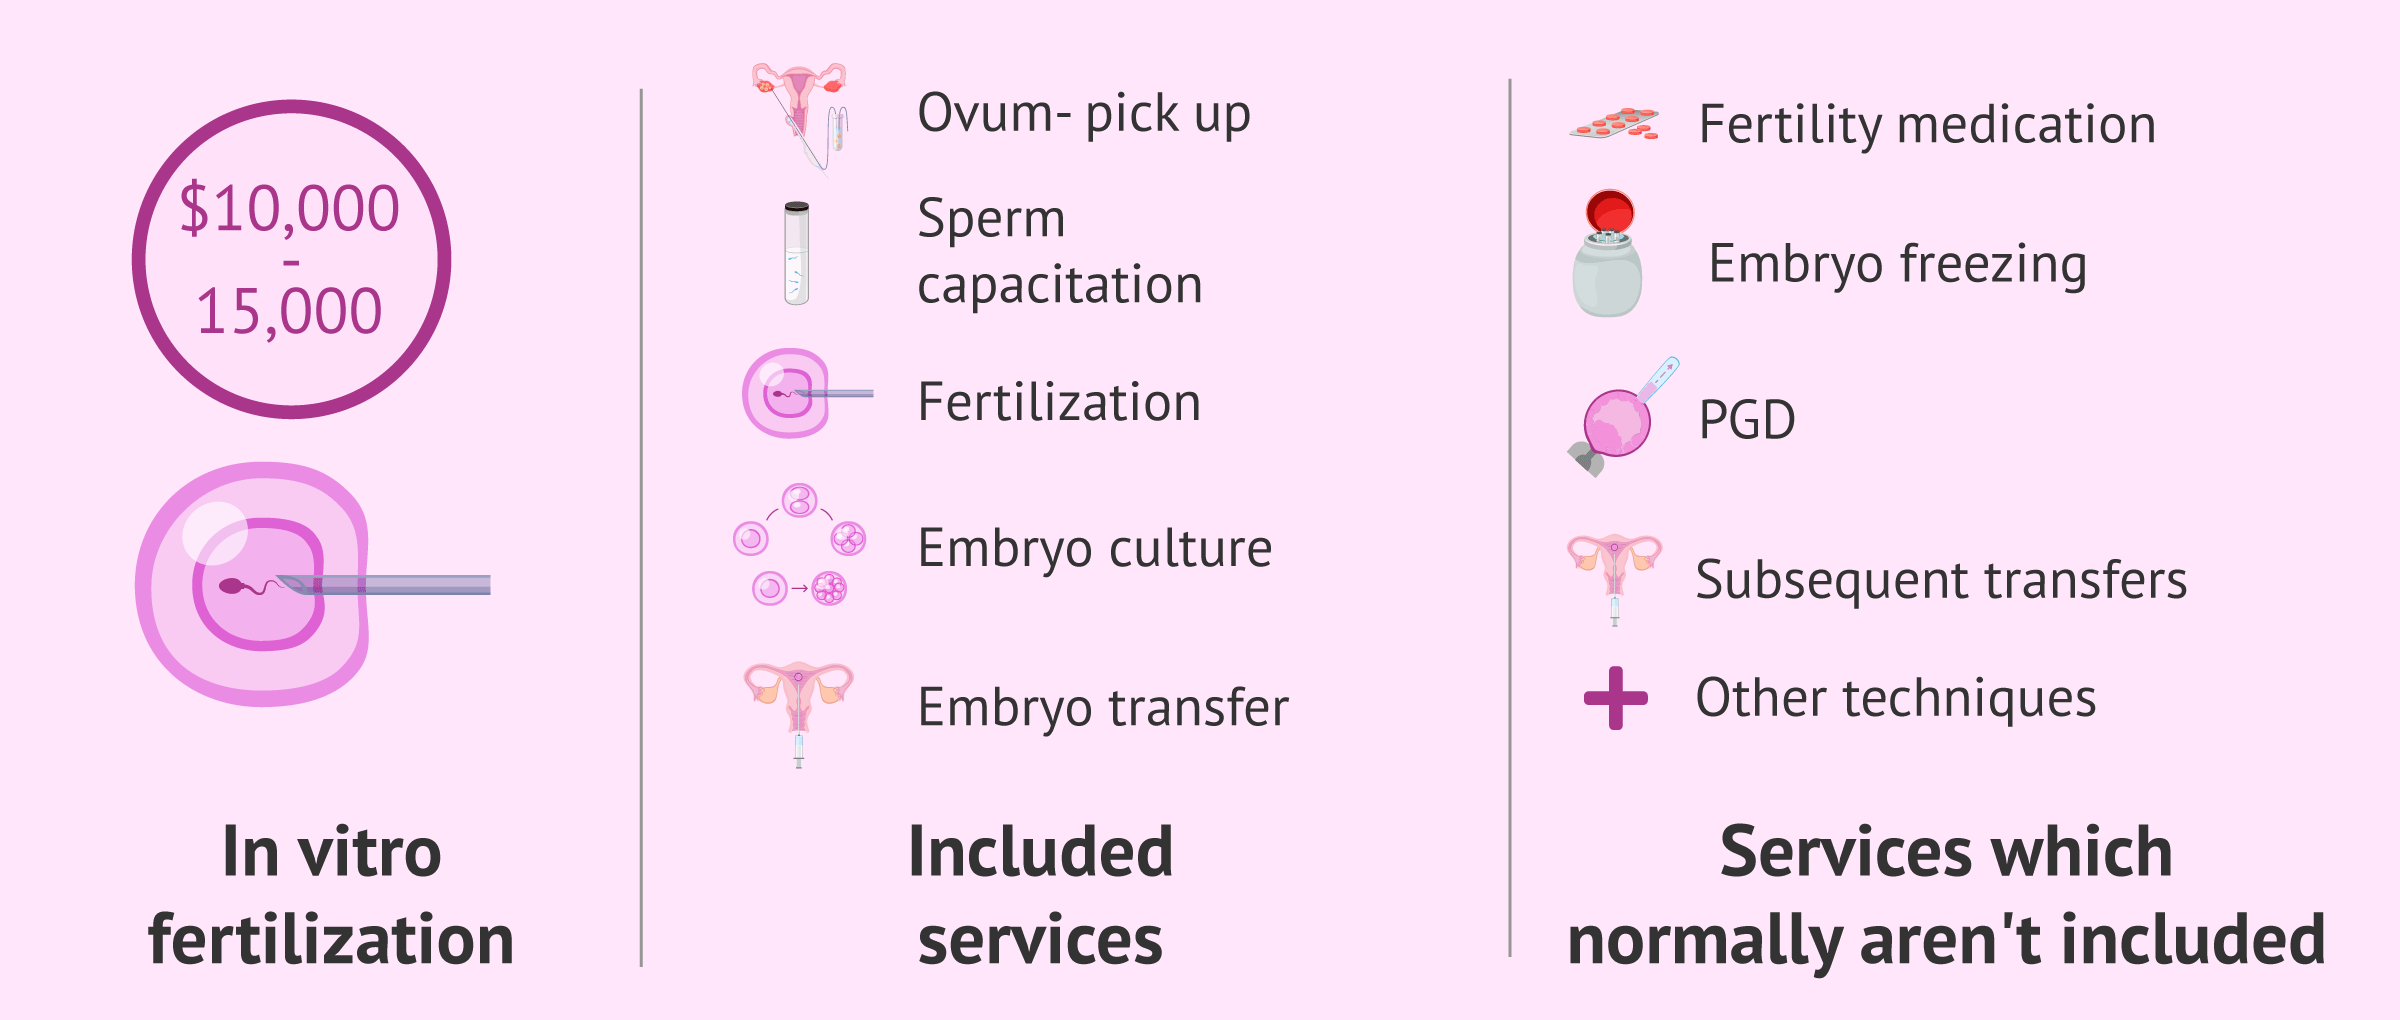 What's included in the IVF cost?